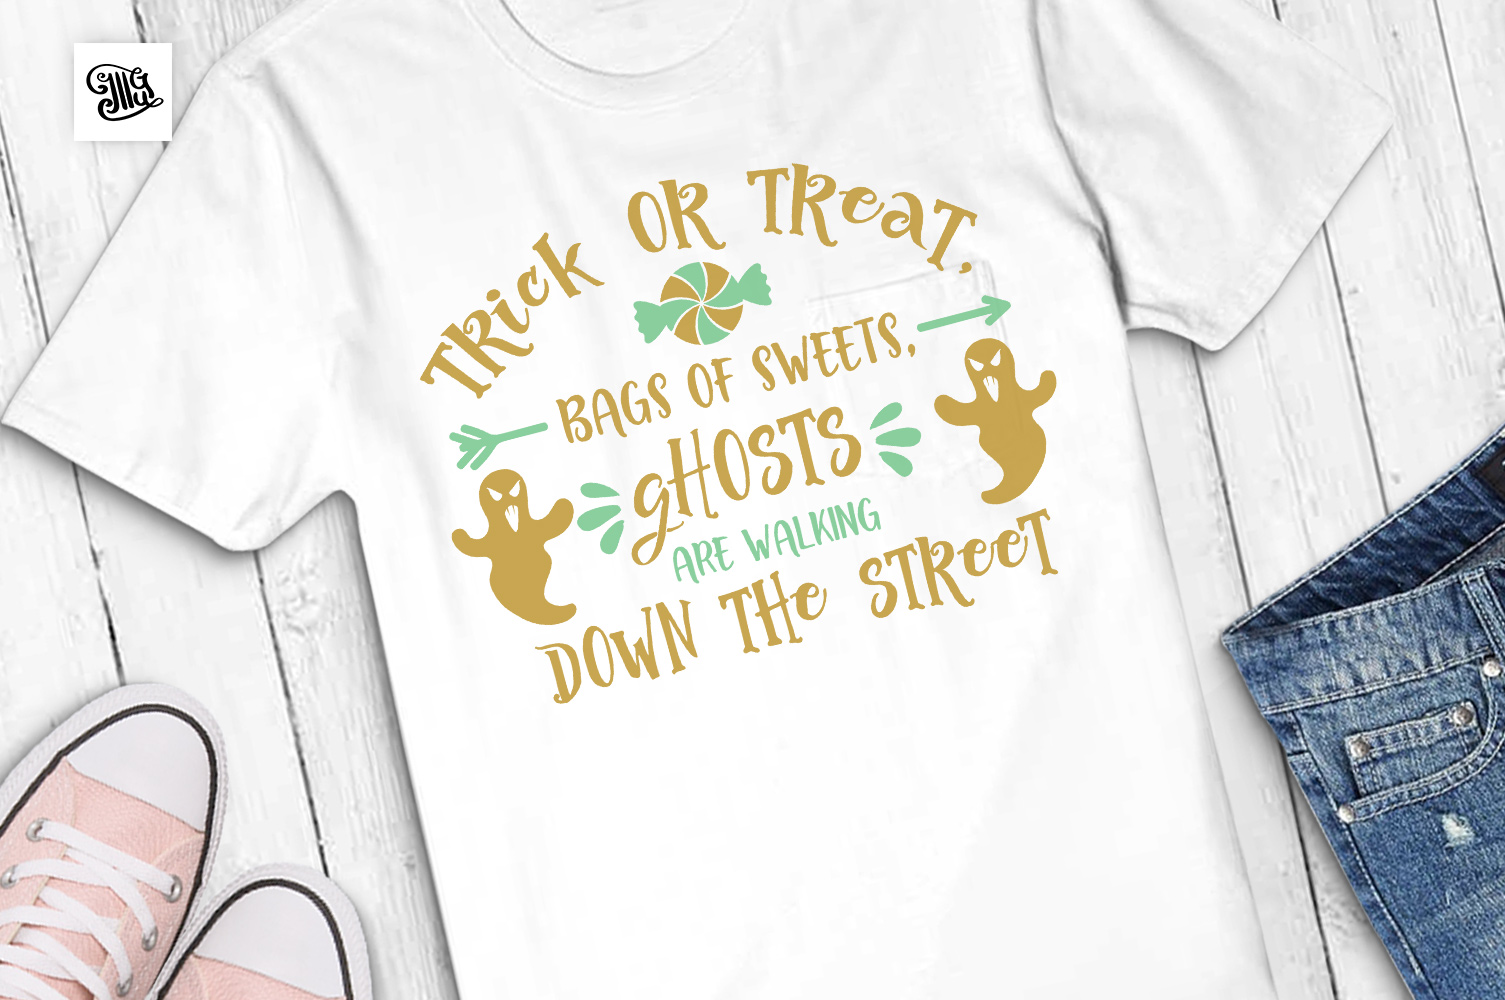 Trick or treat, bags of sweets, ghosts are walking example image 1